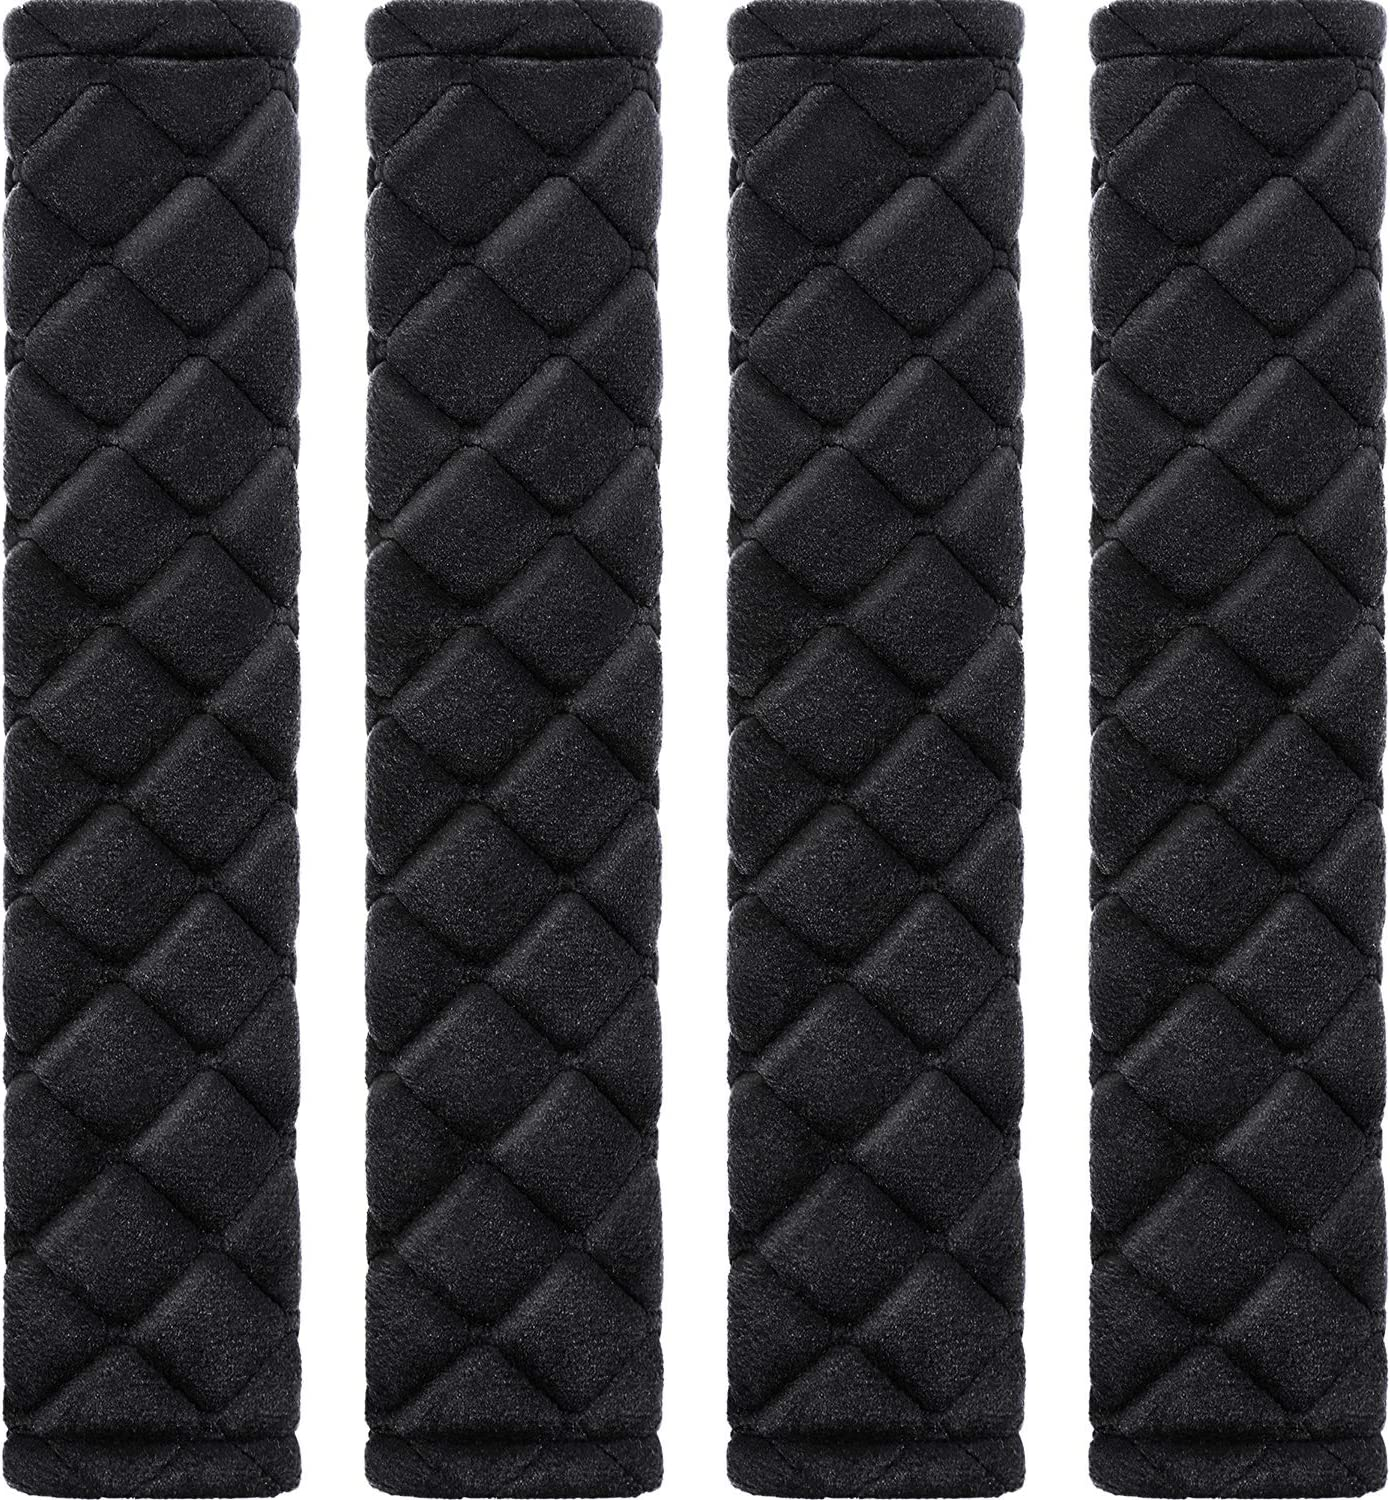 Tatuo 4 Pack Car Seat Belt Pads Seatbelt Protector Soft Comfort Seat Belt Shoulder Strap Covers Harness Pads Helps Protect Your Neck and Shoulder (Black)